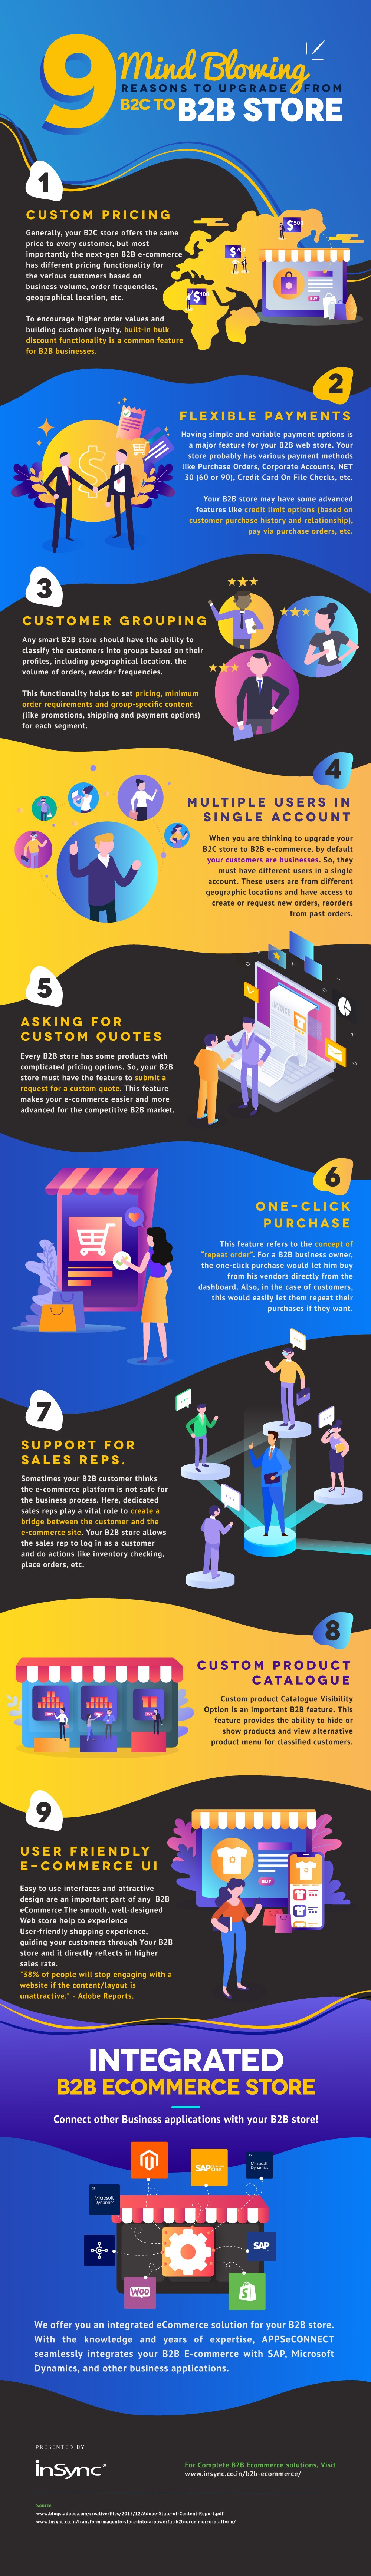 Reasons-to-upgrade-from-B2C-to-B2B-store